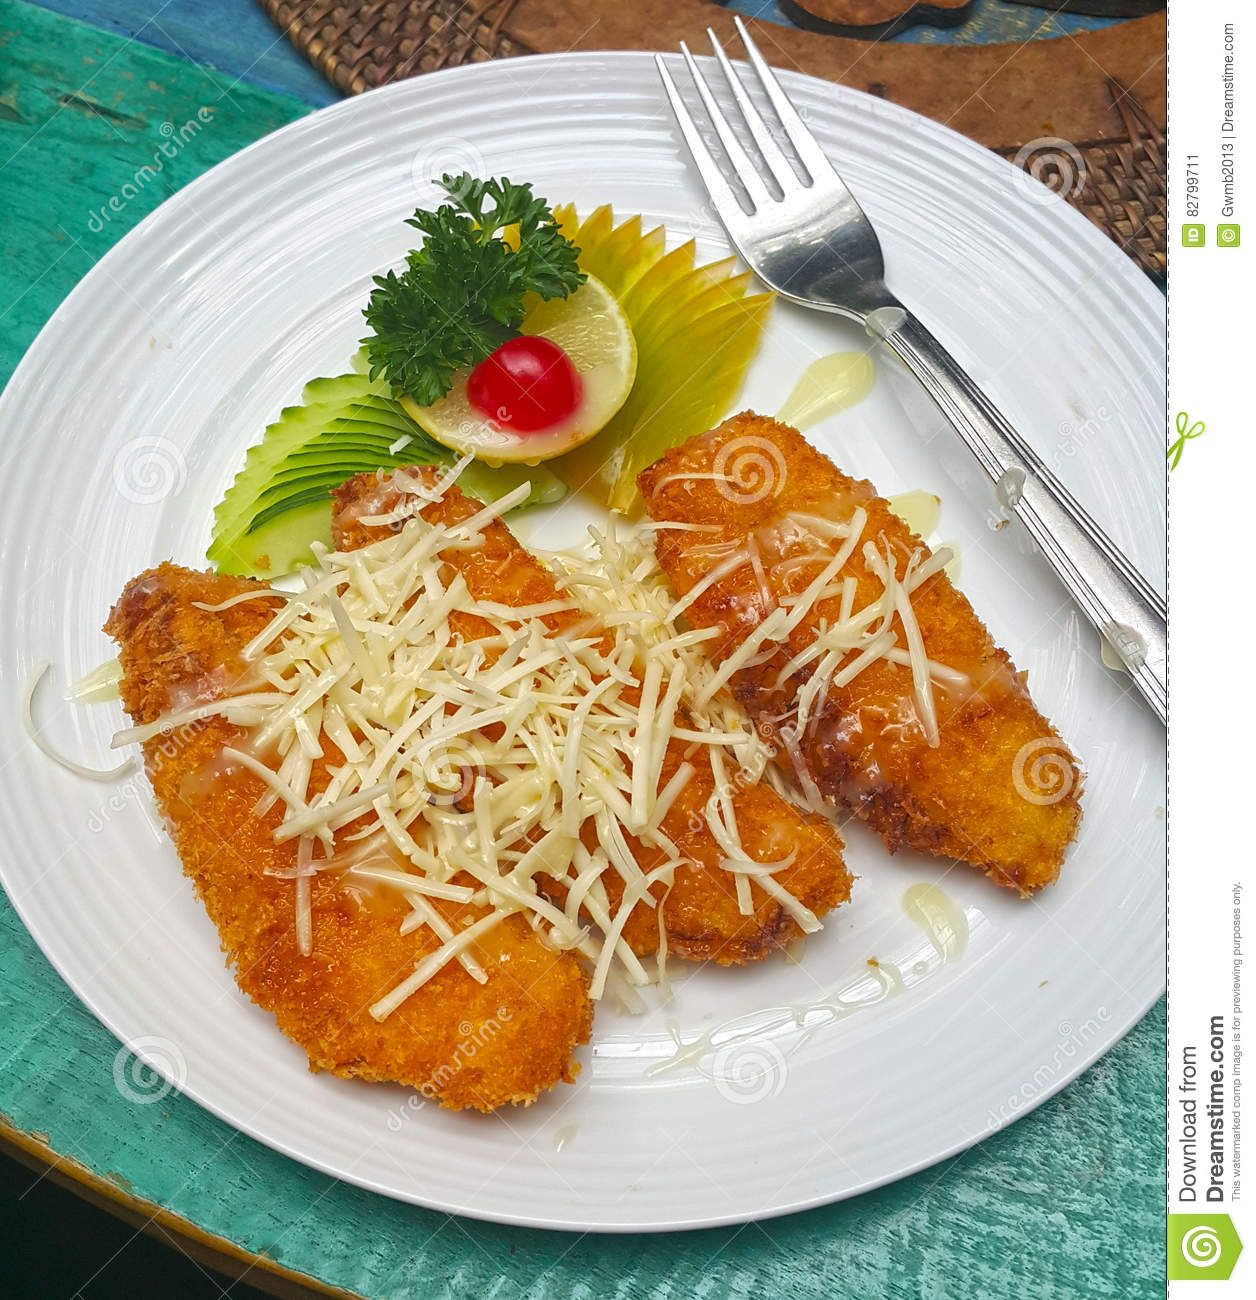 Pisang Goreng Stock Image Image Of Cinnamon Delicious 82799711